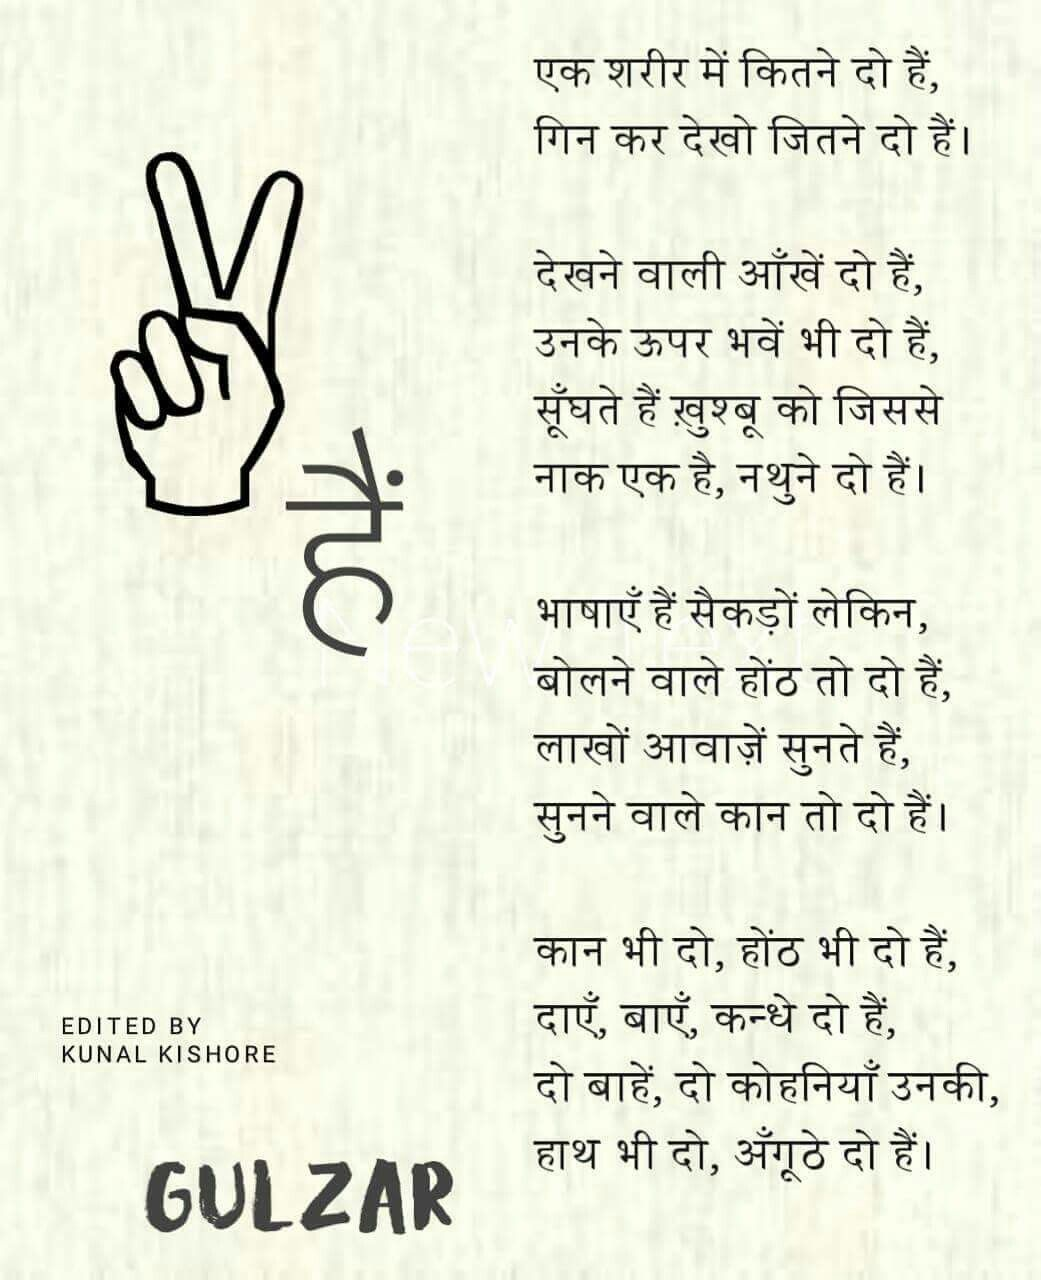 Pin By Manmeet Sood On Poems Hindi Poems For Kids Rhyming Poems For Kids Kids Poems [ 1280 x 1041 Pixel ]